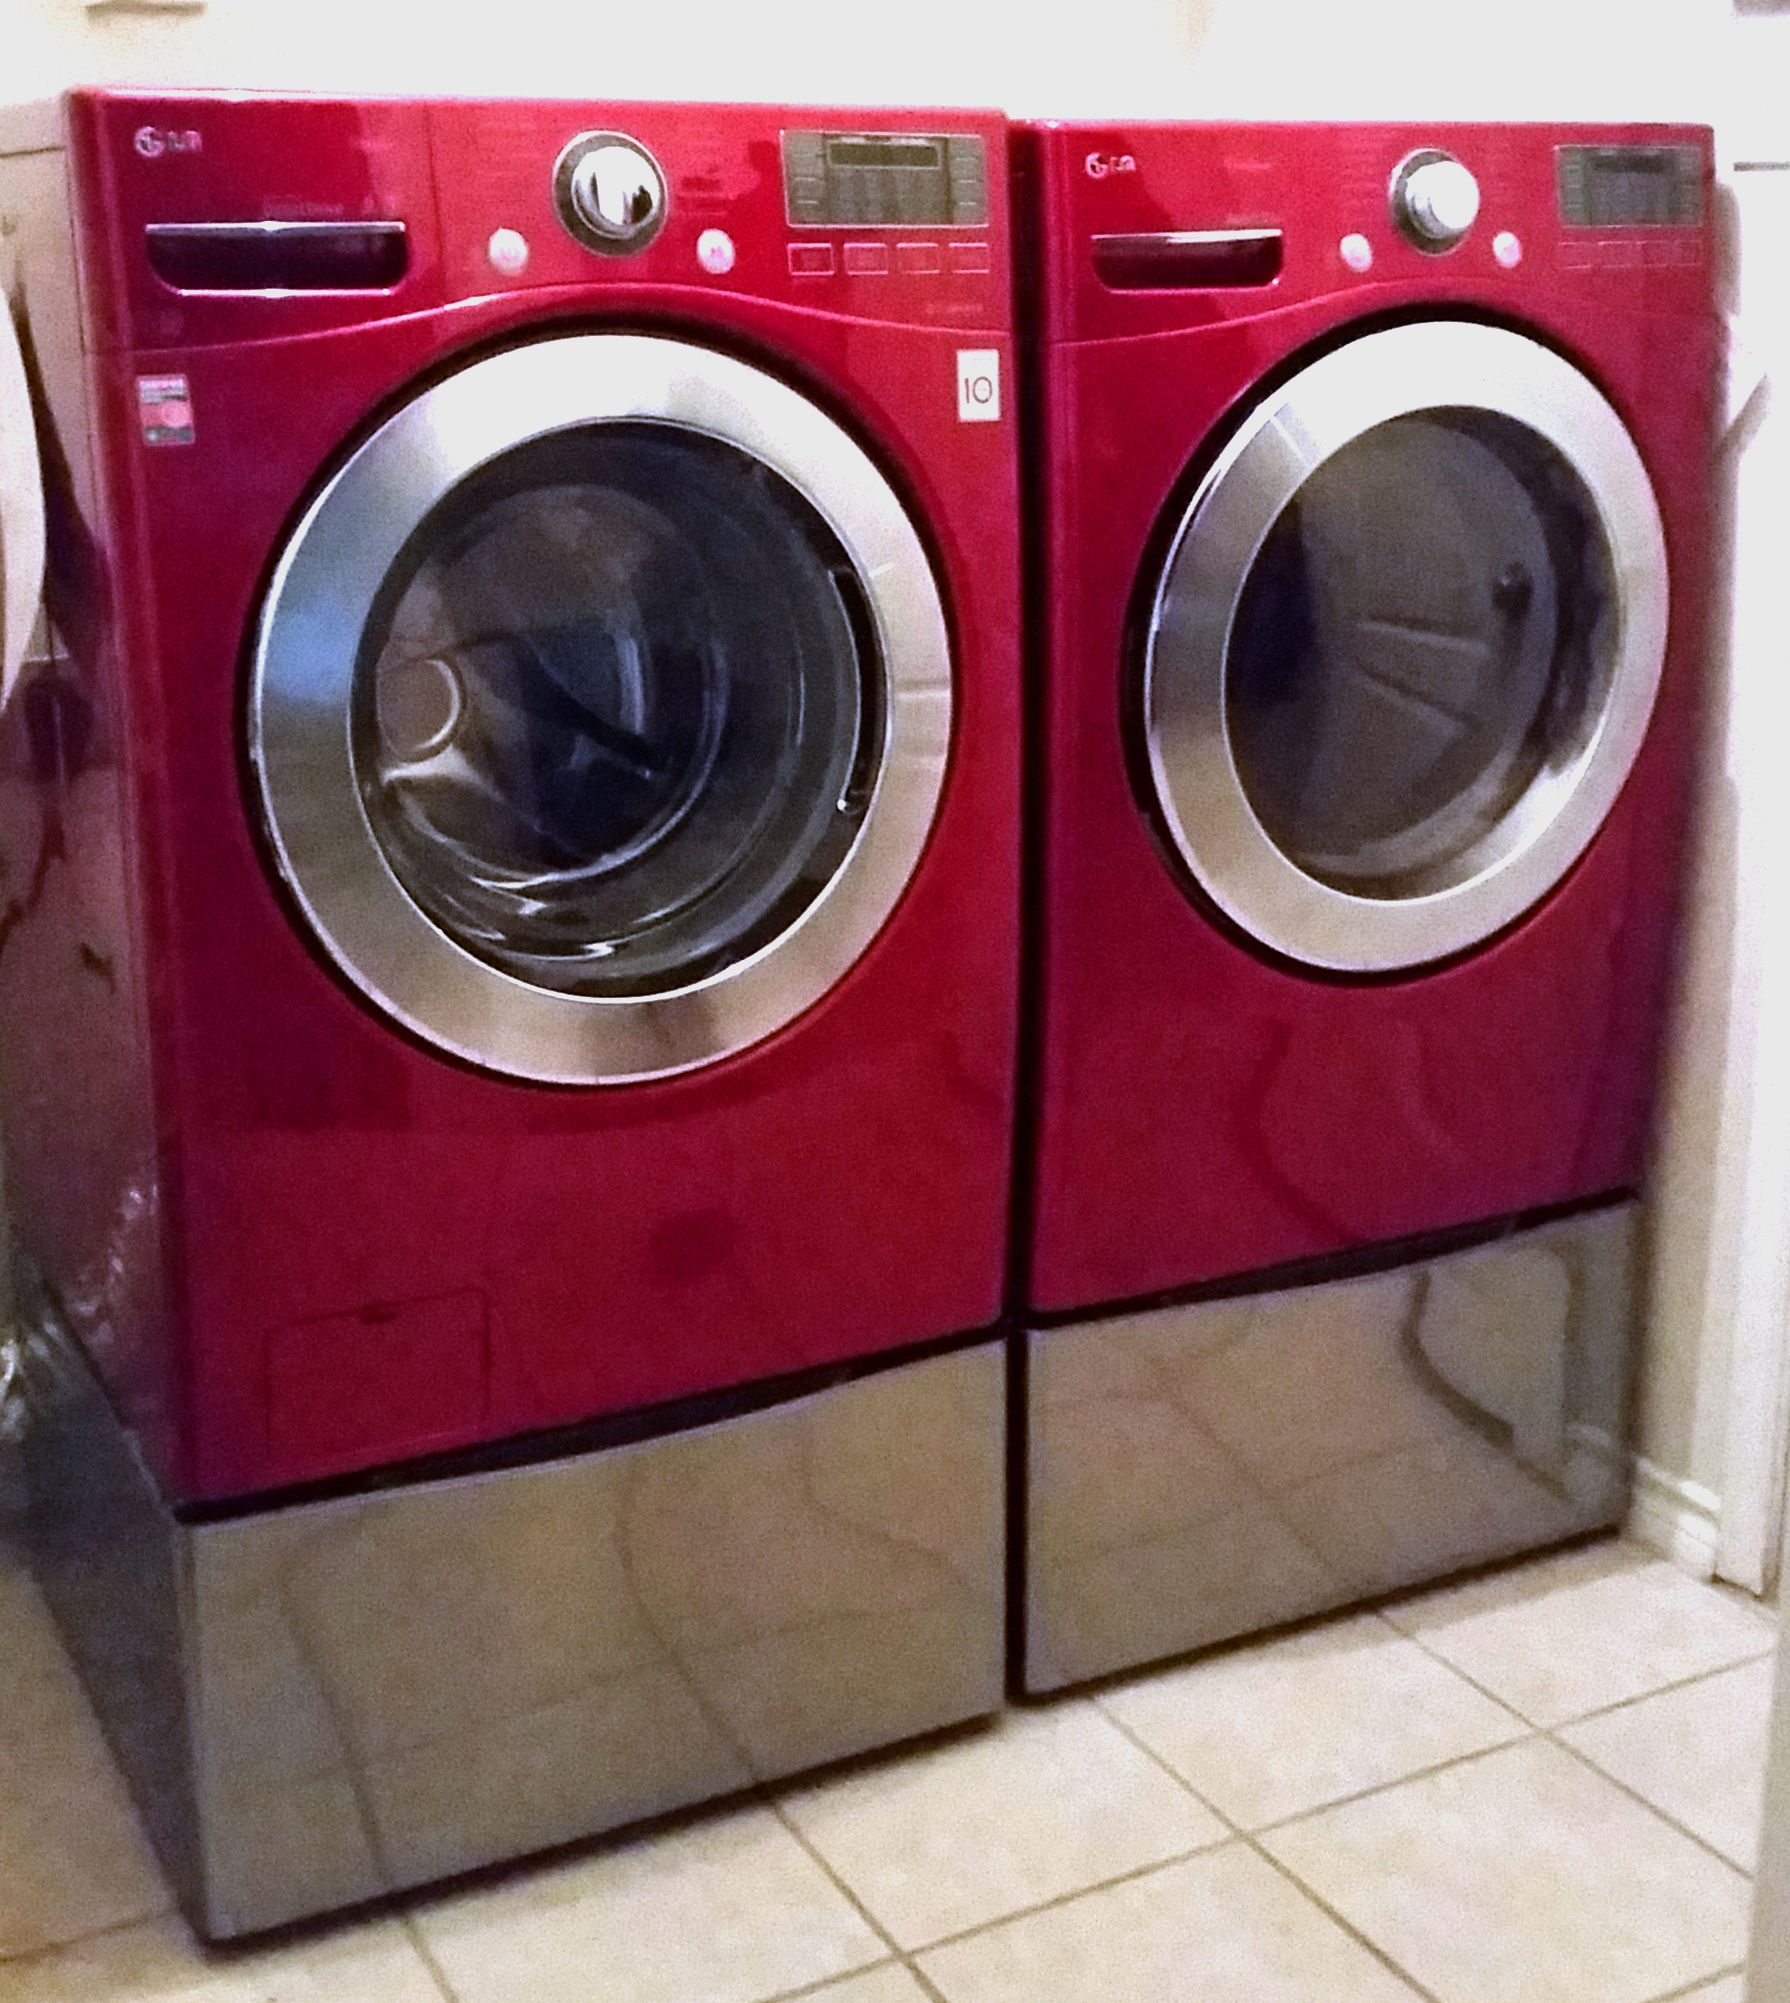 Cherry Red Lg Washer And Dryer With Graphite Pedestals In 2019 Lg Washer Dryer Washer Dryer Red Washer Dryer